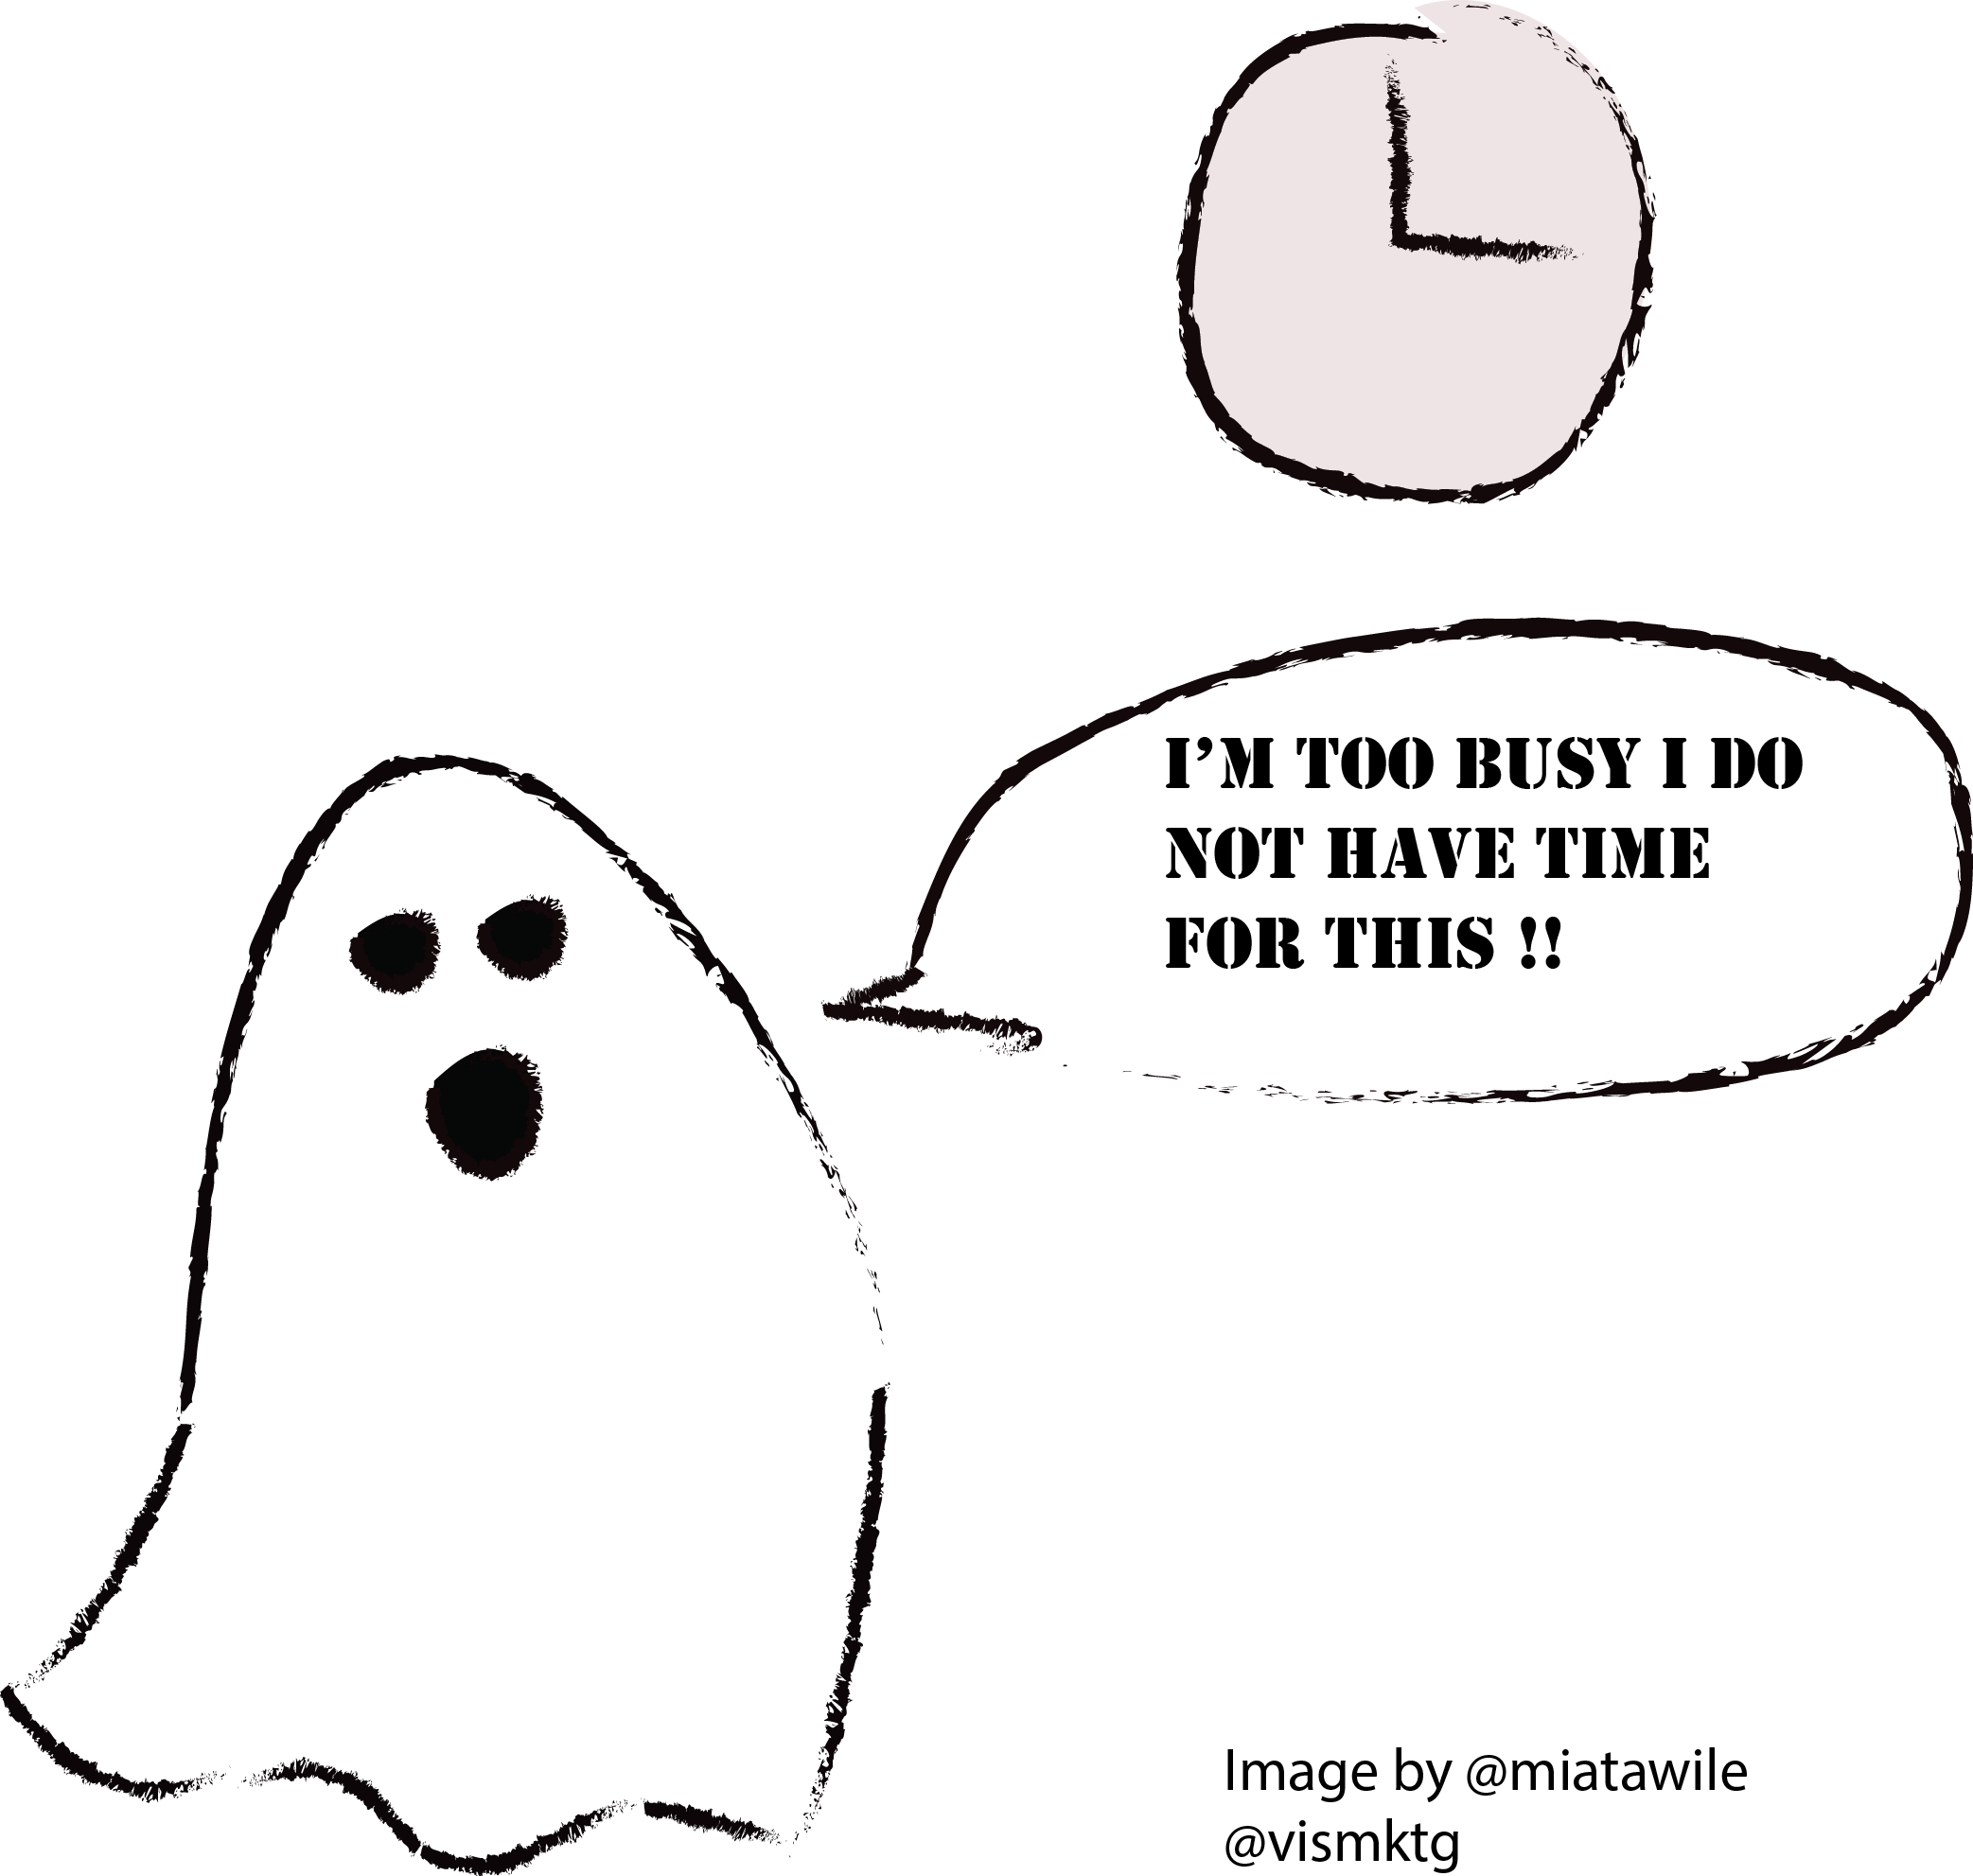 Ghosting, a new social phenomenon caused by digital